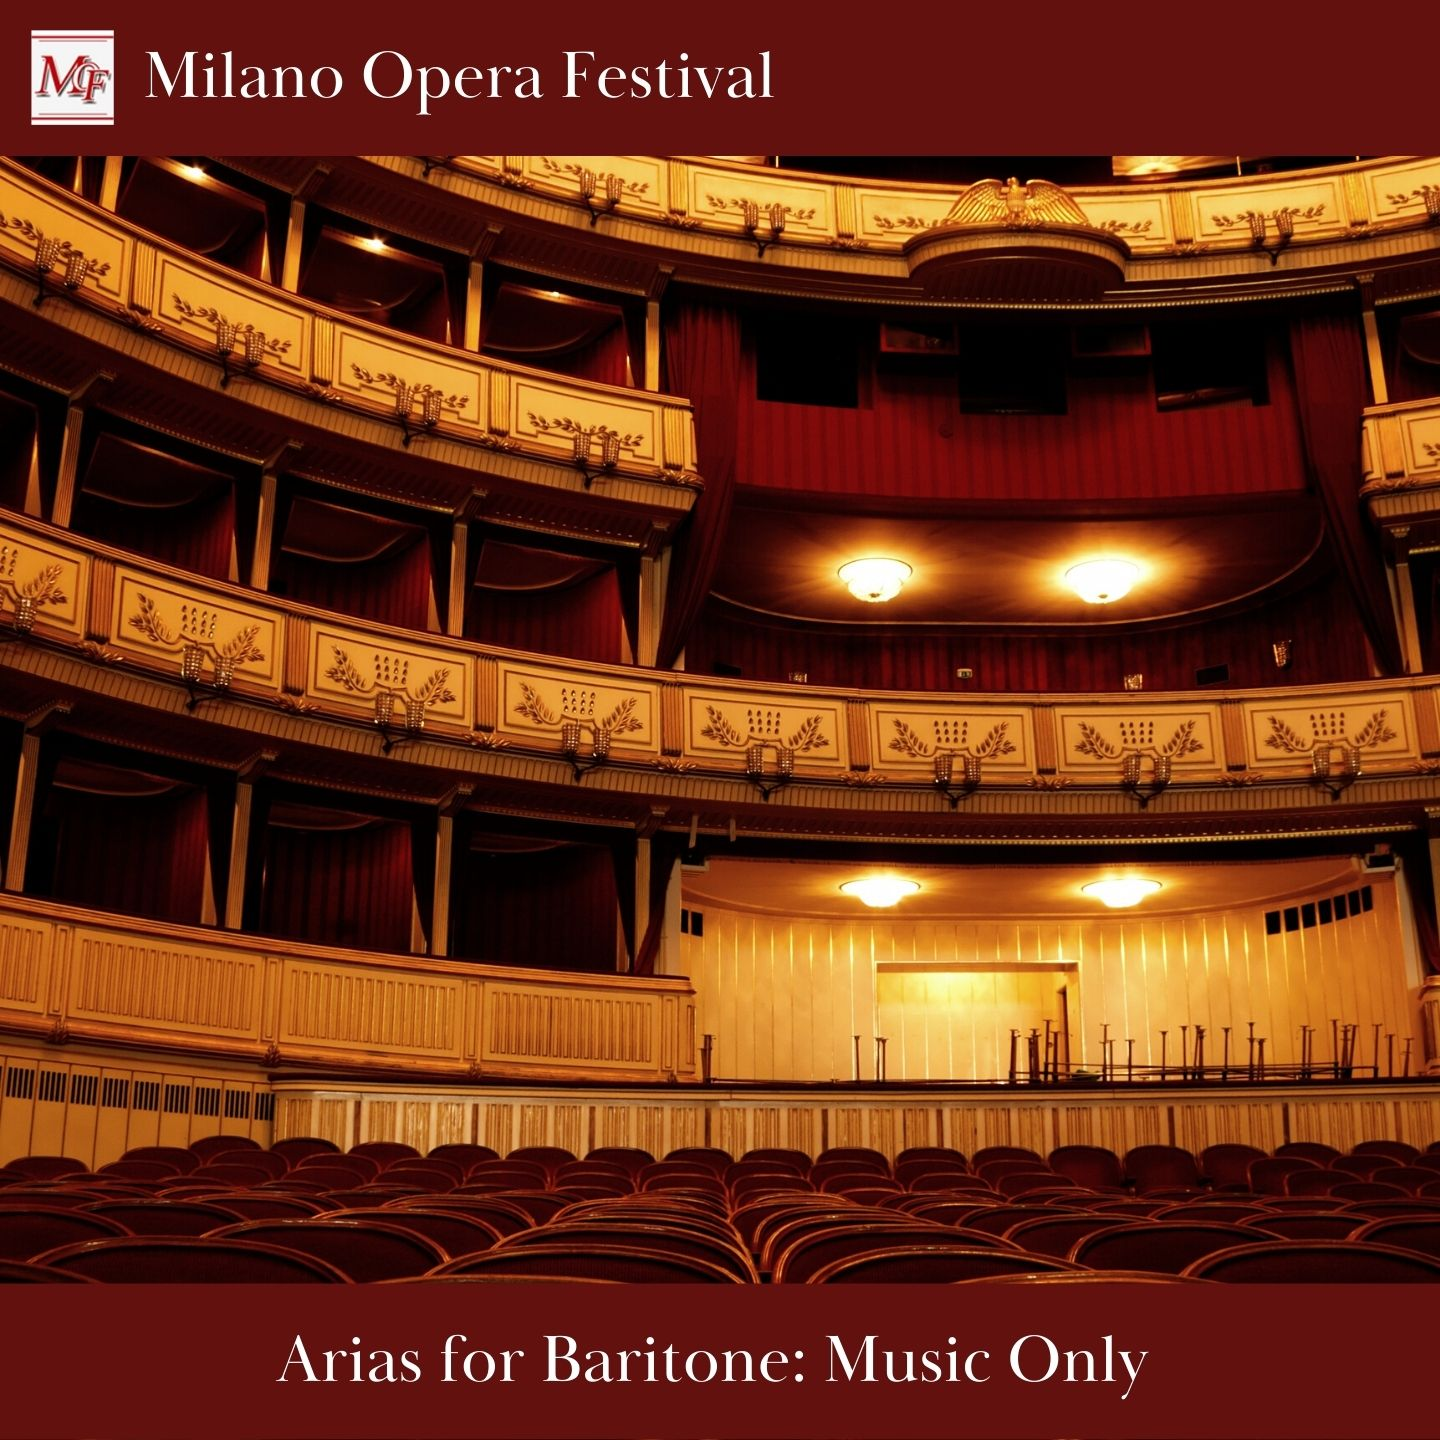 Arias for Baritone - Only Music